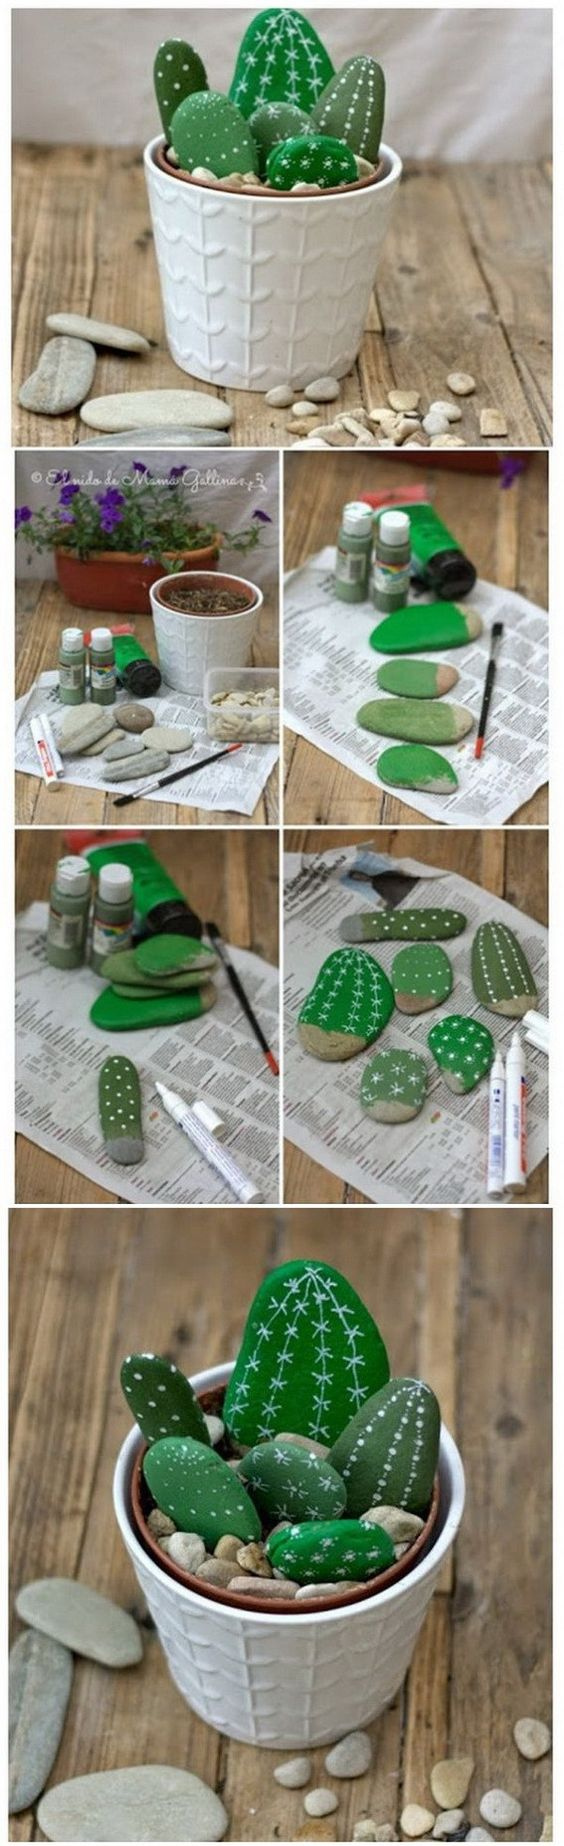 Painted Cactus Rocks.